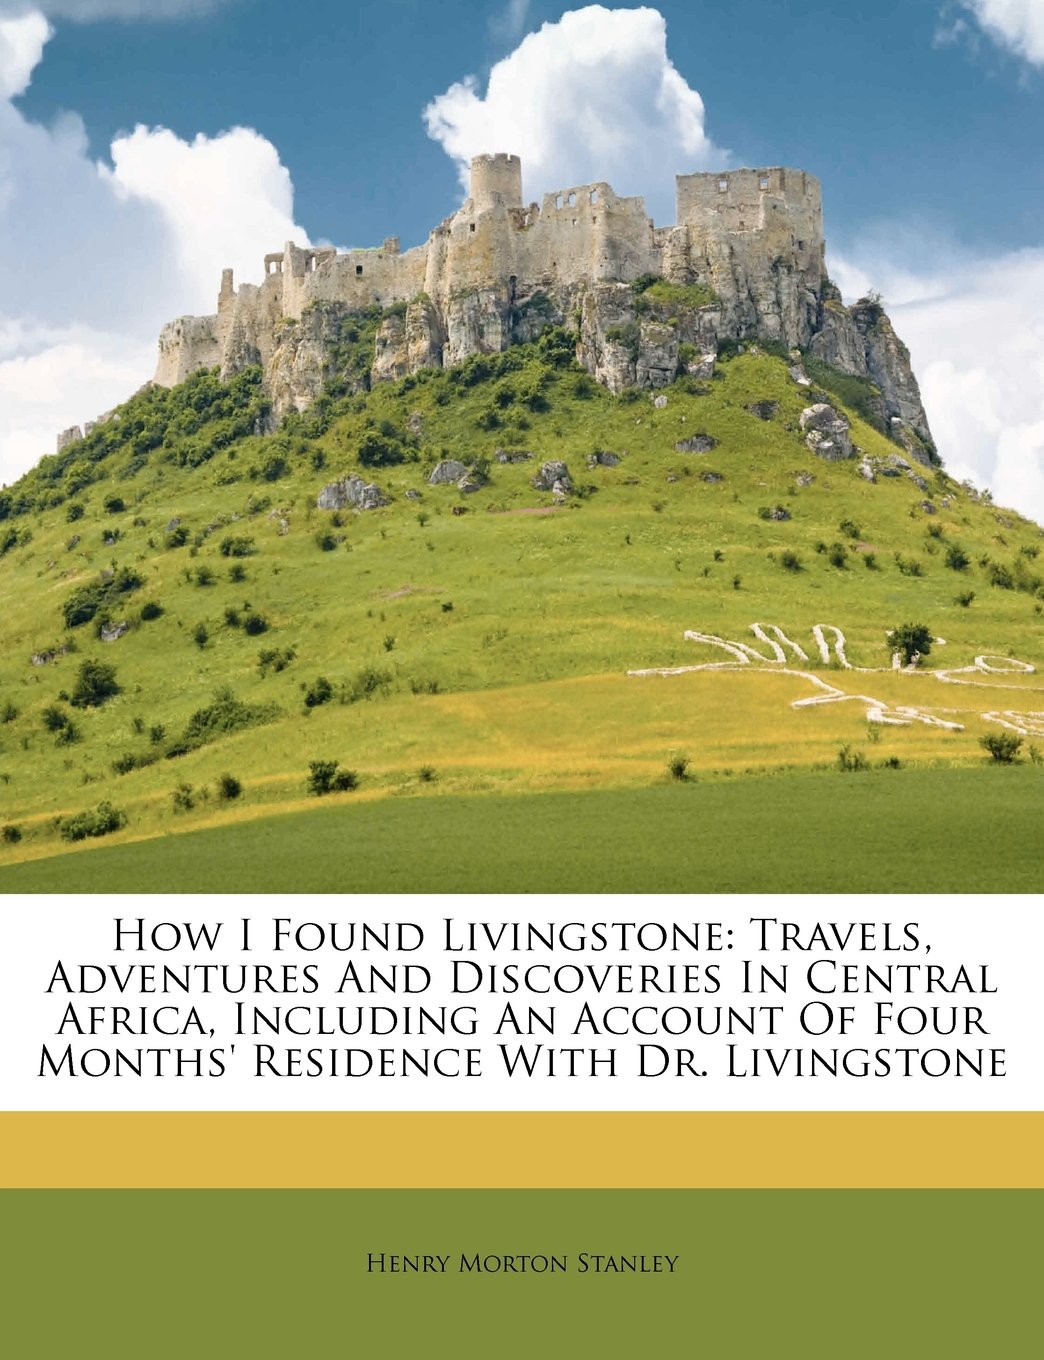 Read Online How I Found Livingstone: Travels, Adventures And Discoveries In Central Africa, Including An Account Of Four Months' Residence With Dr. Livingstone PDF